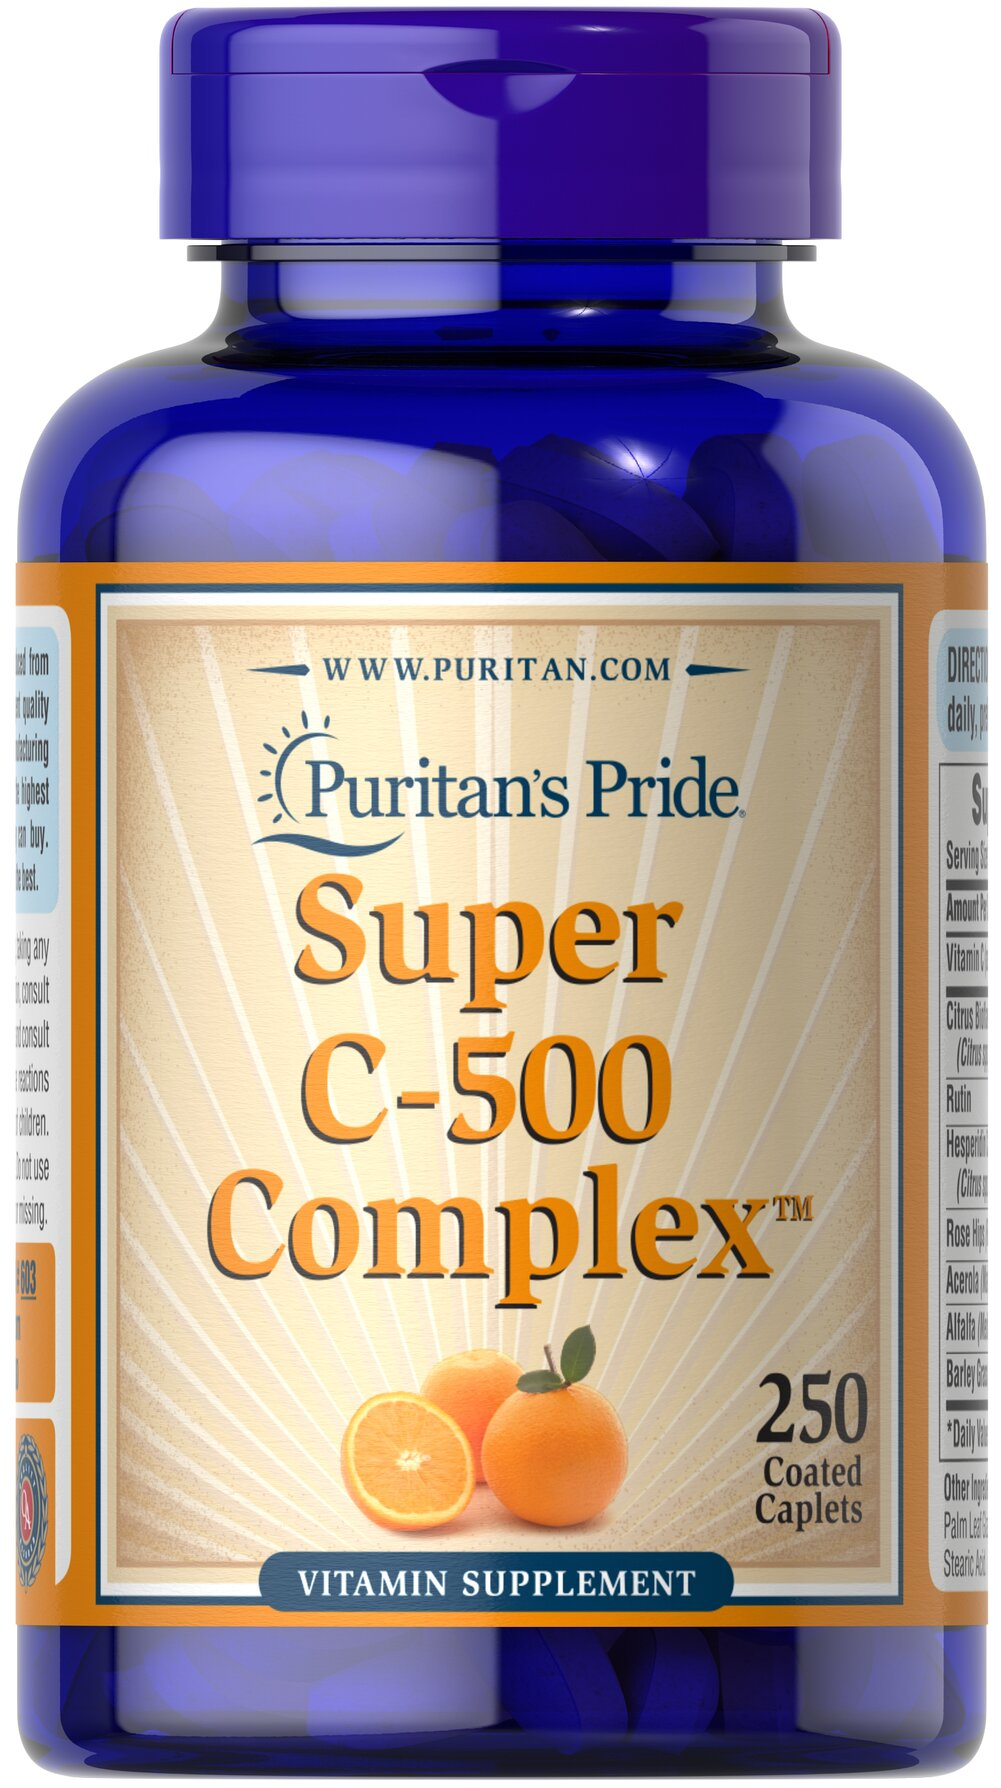 Vitamin C-500 Complex <p>Vitamin C  is essential to many functions in the body and is one of the leading vitamins for immune support.** Our C-complex includes potent Vitamin C as Ascorbic Acid. We also include Citrus Bioflavonoids, Rose Hips, Rutin, and Acerola.**</p><p>Offers superior antioxidant support.**</p><p>Supports healthy immune function and promotes well-being.**</p> 250 Coated Caplets 500 mg $18.89